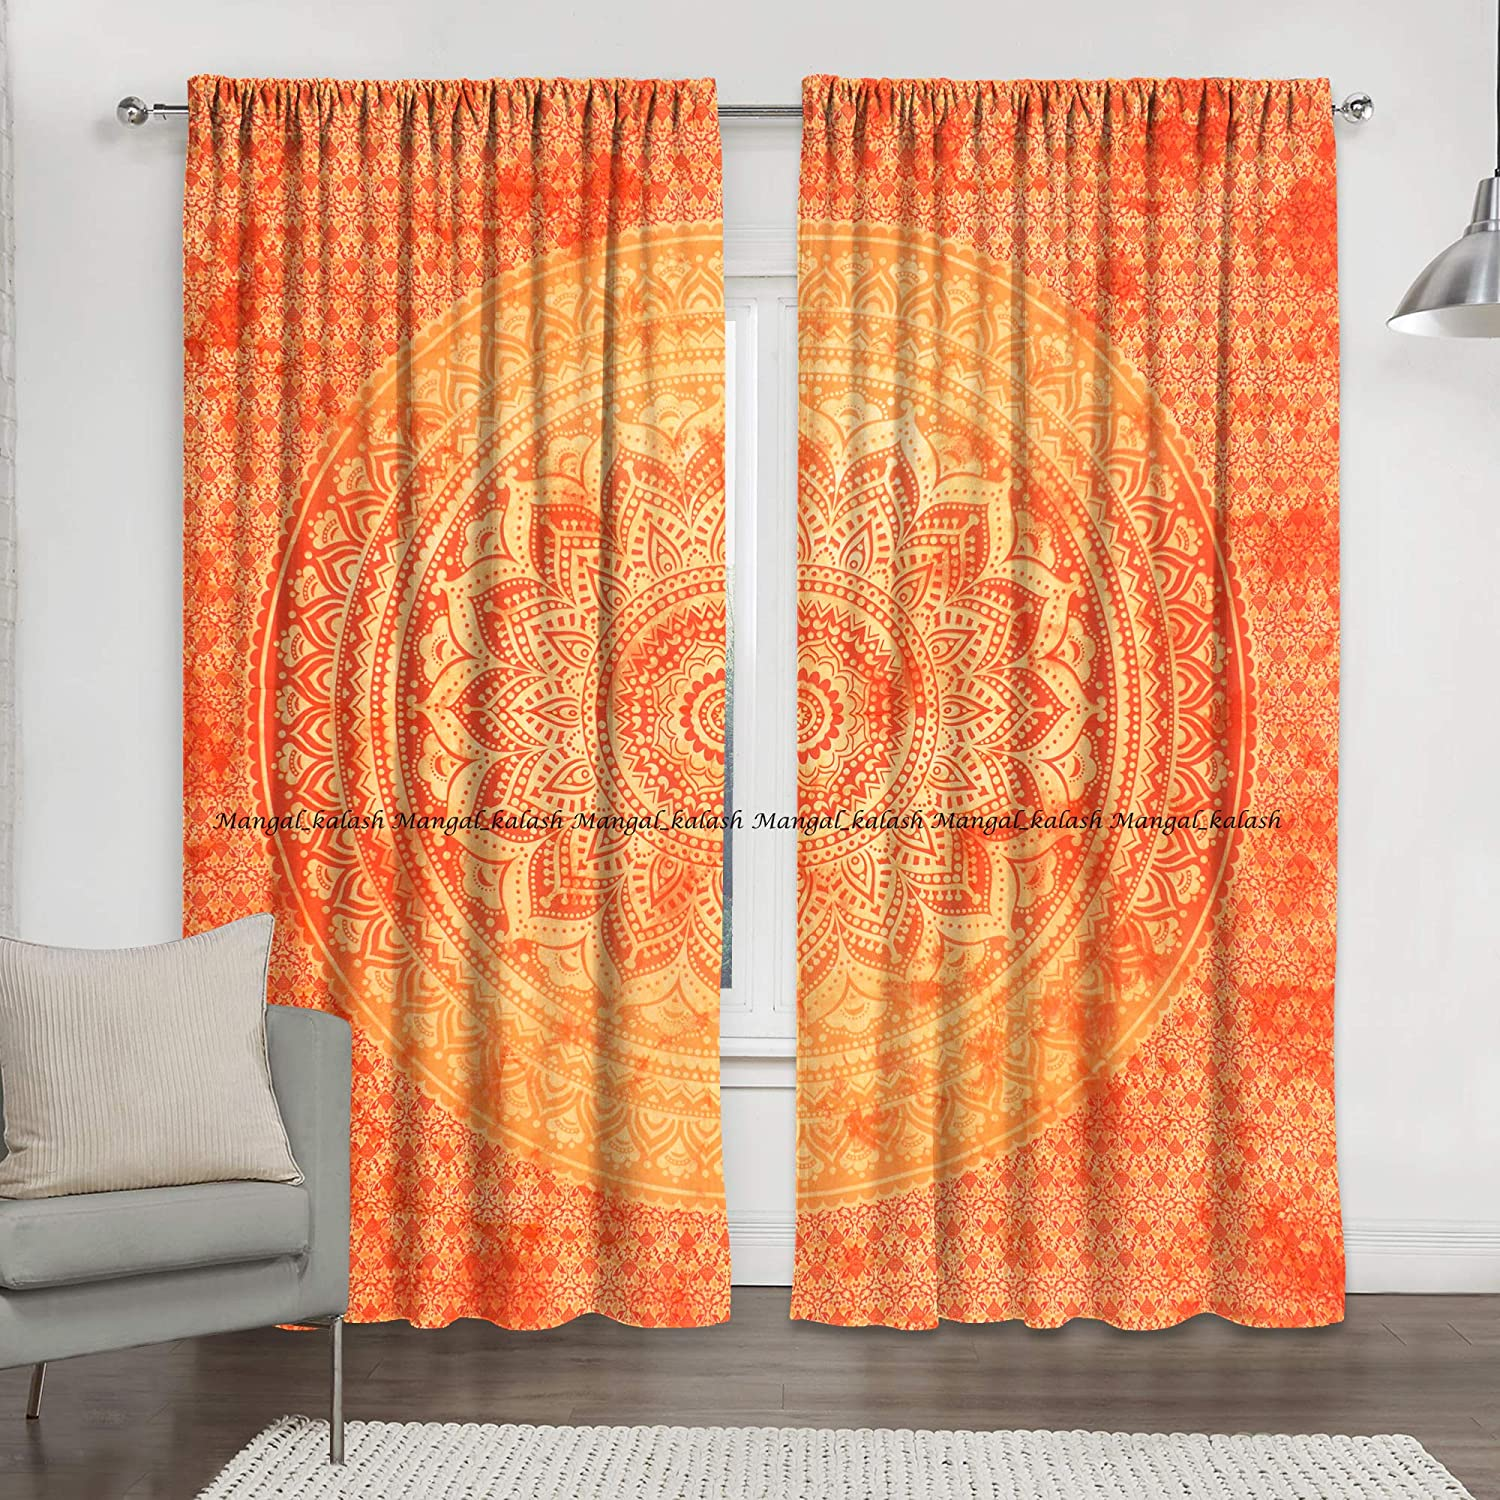 100/% Cotton mandala window door curtain indian ombre hippie bohemian tapestry drapes wall hanging throw living room treatment decor